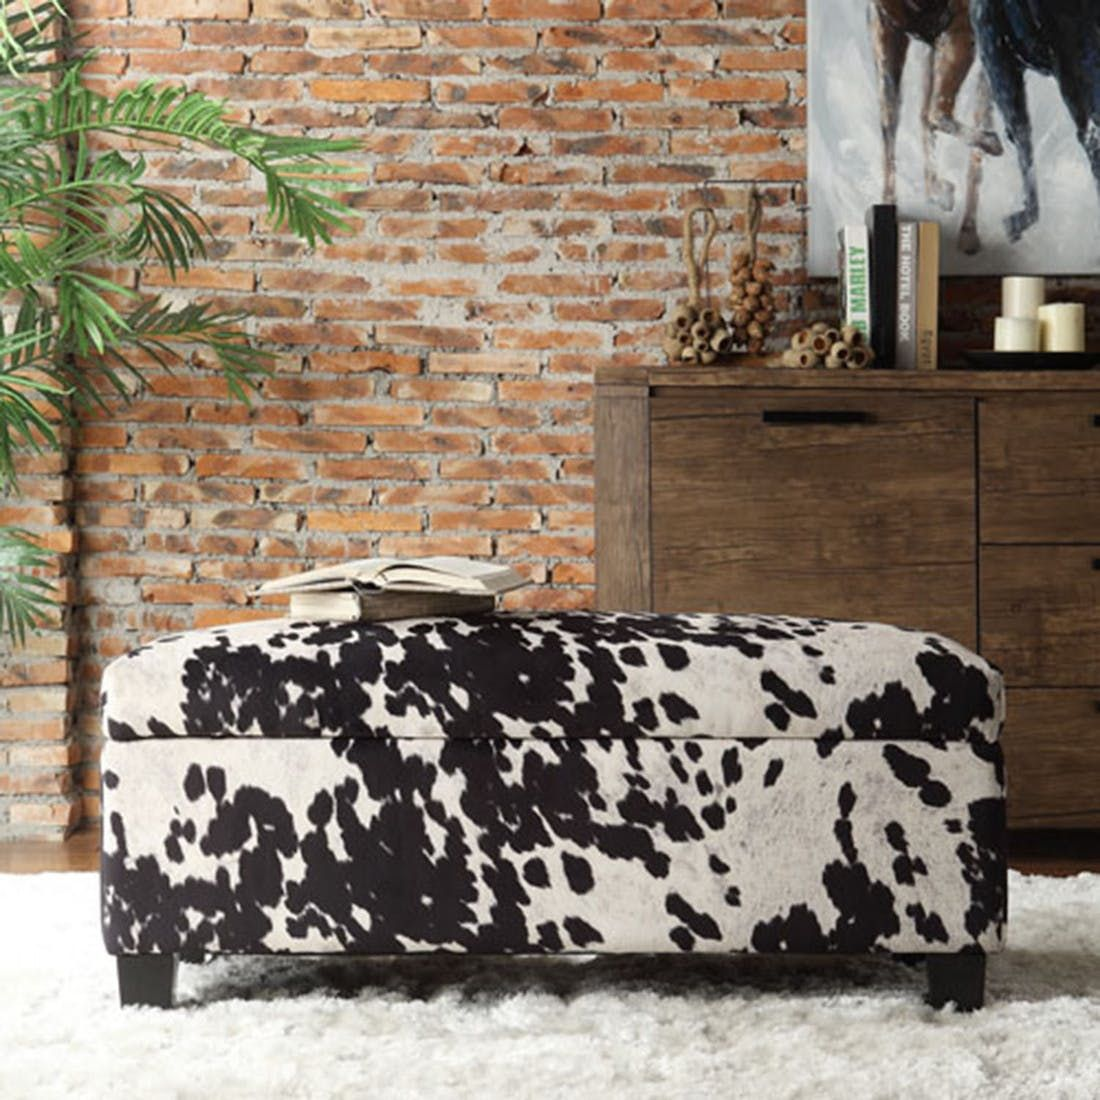 Storage Ottoman With Lift Top Faux Cowhide Cow Print Footstool Storage Bench Storage Ottoman Bench Cowhide Print